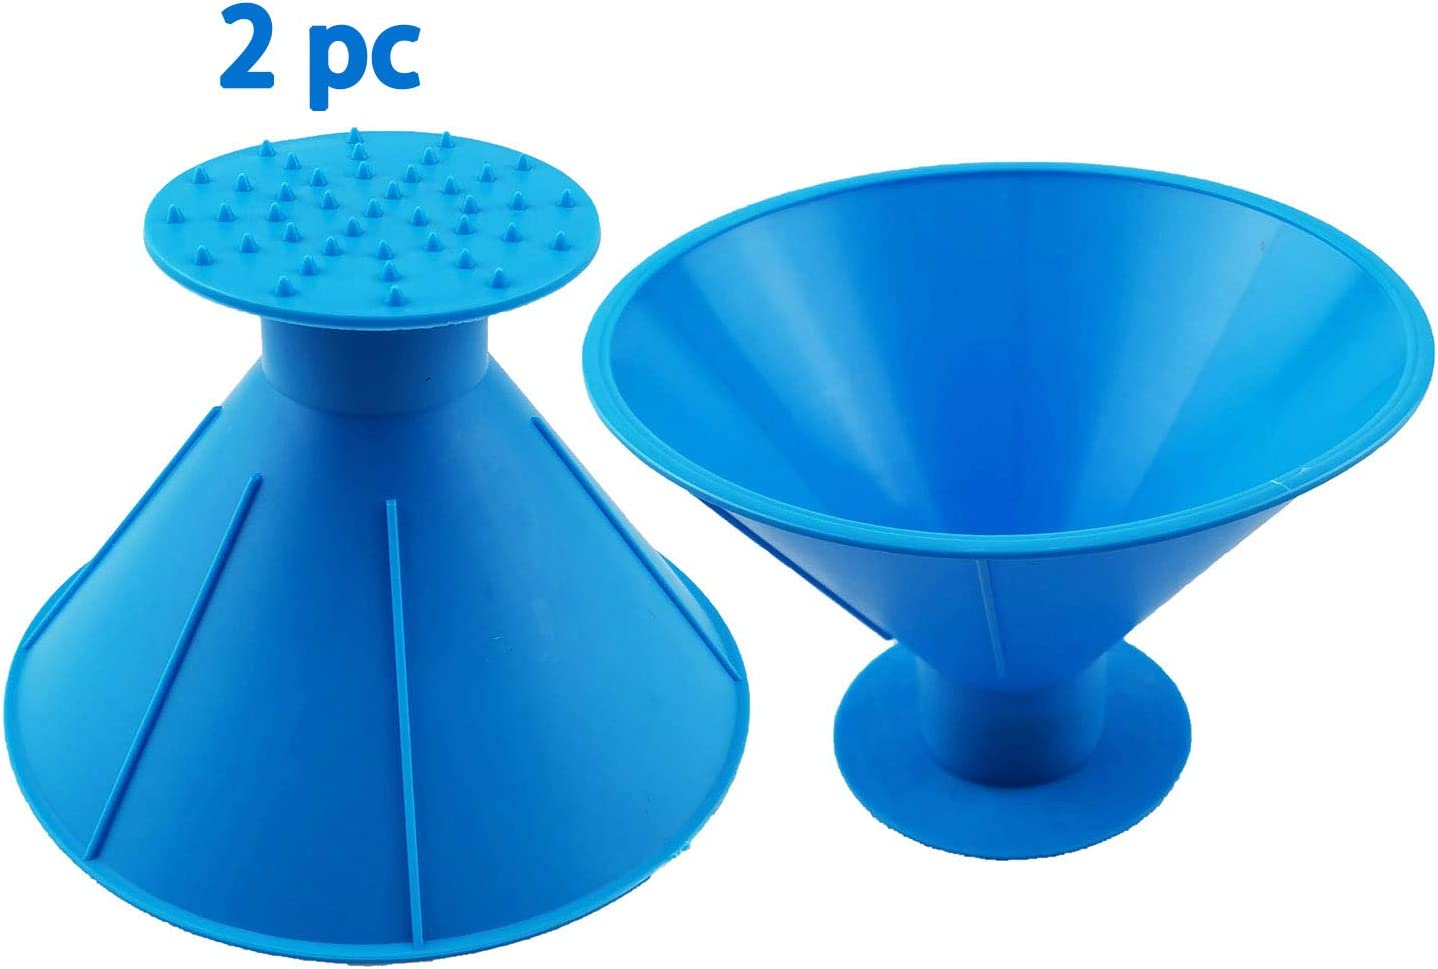 CTHAP 2 Pack Round Windshield Ice Scraper, Magic Snow Removal Tool Cone Shaped Frost Removal Funnel Shaped Round Windshield Ice Scraper Car Window Glass Cleaning Tool as Gift (Blue)